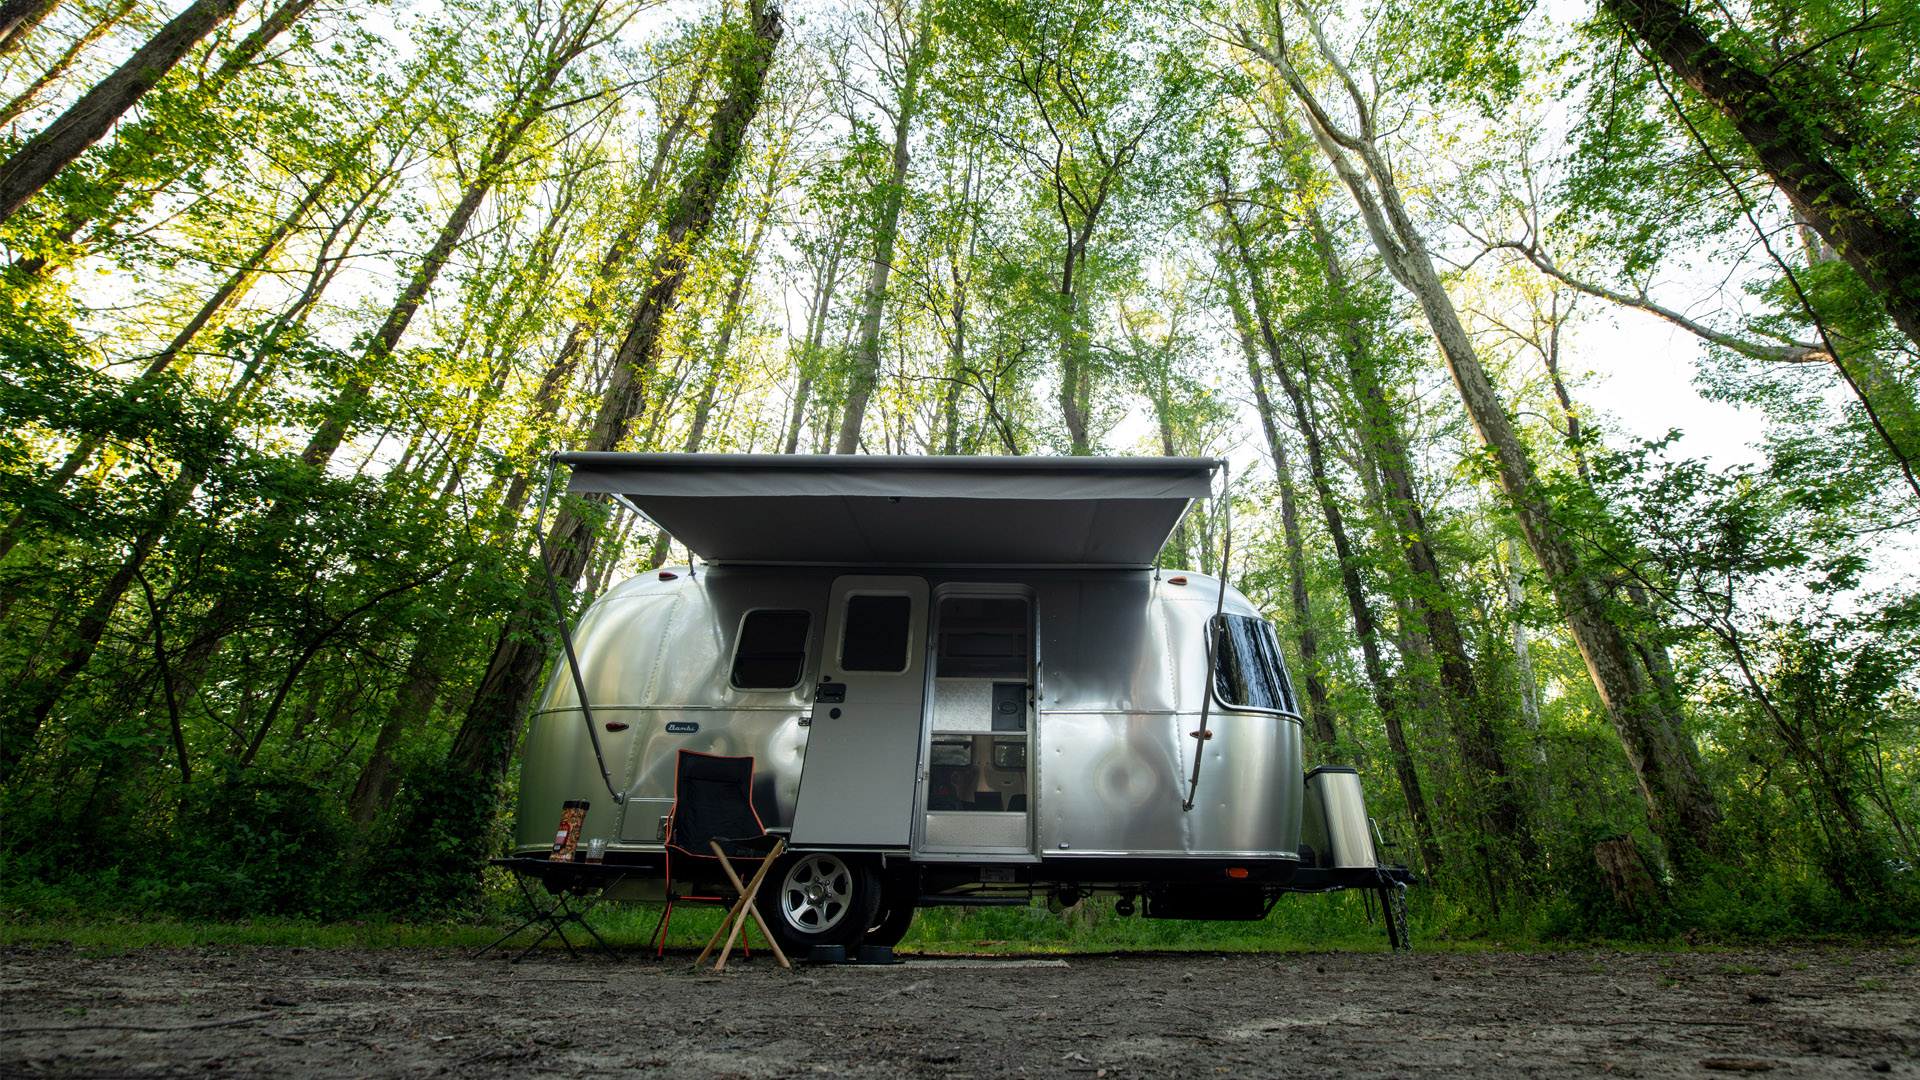 The Airstream Bambi, a small RV